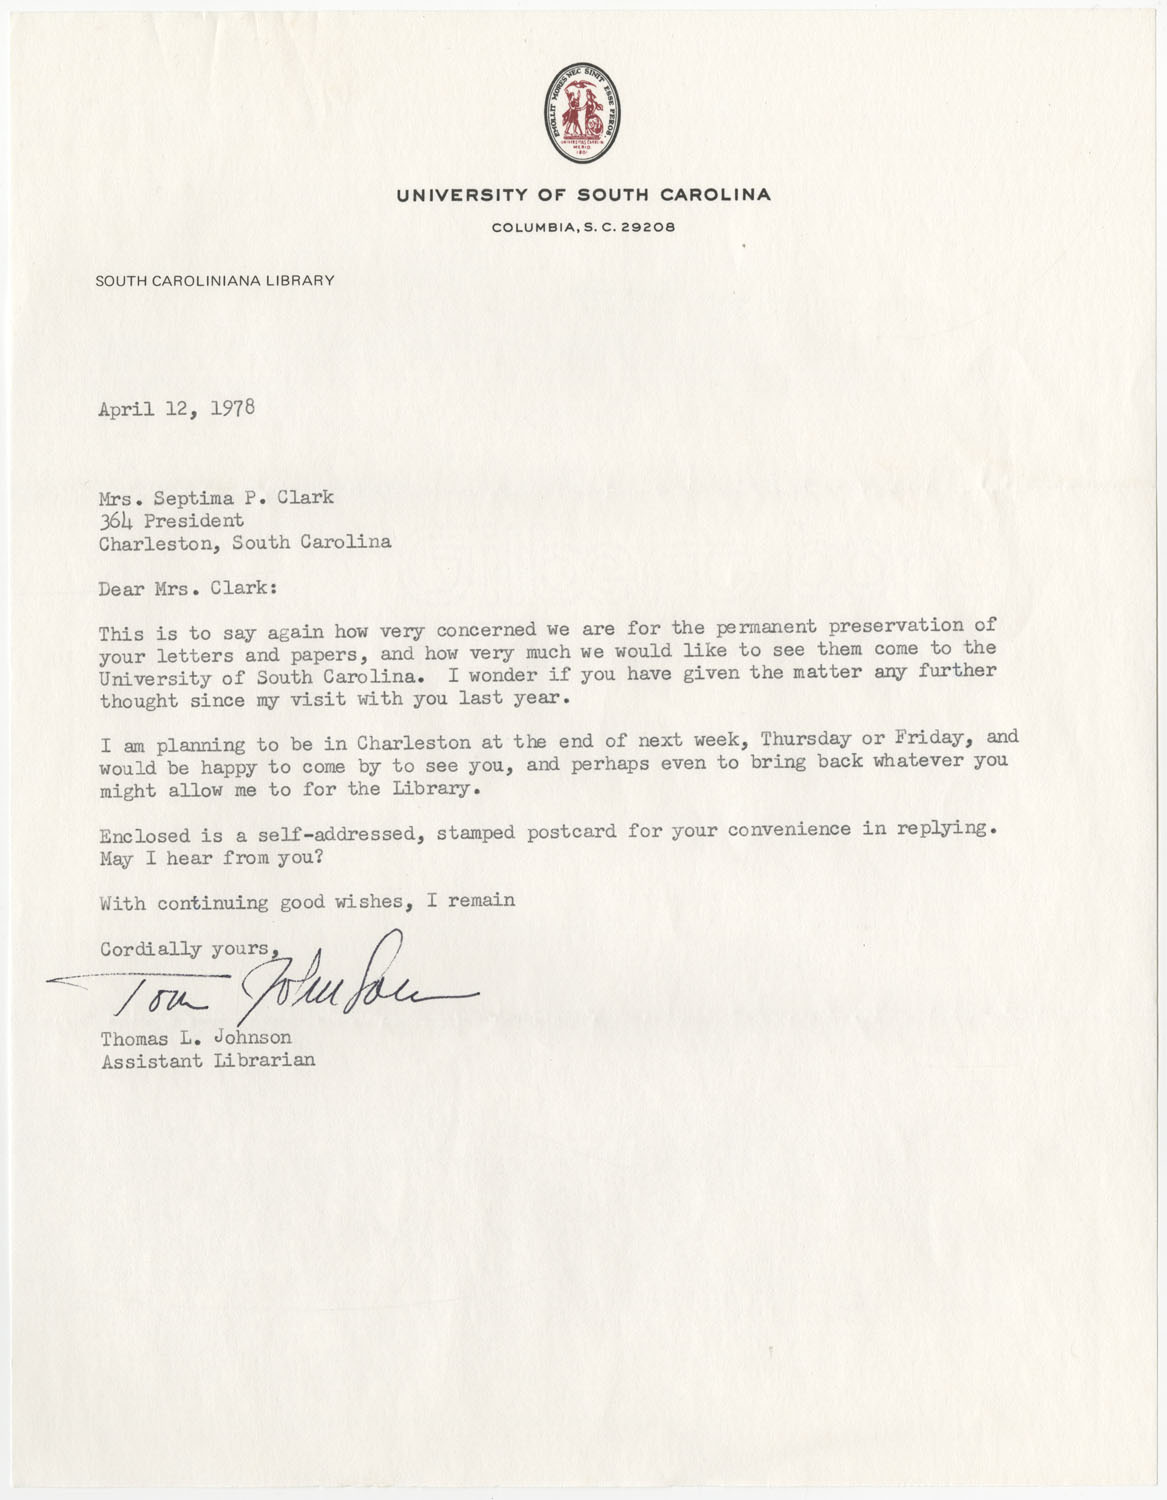 Letter from Thomas L. Johnson to Septima P. Clark, June 12, 1978